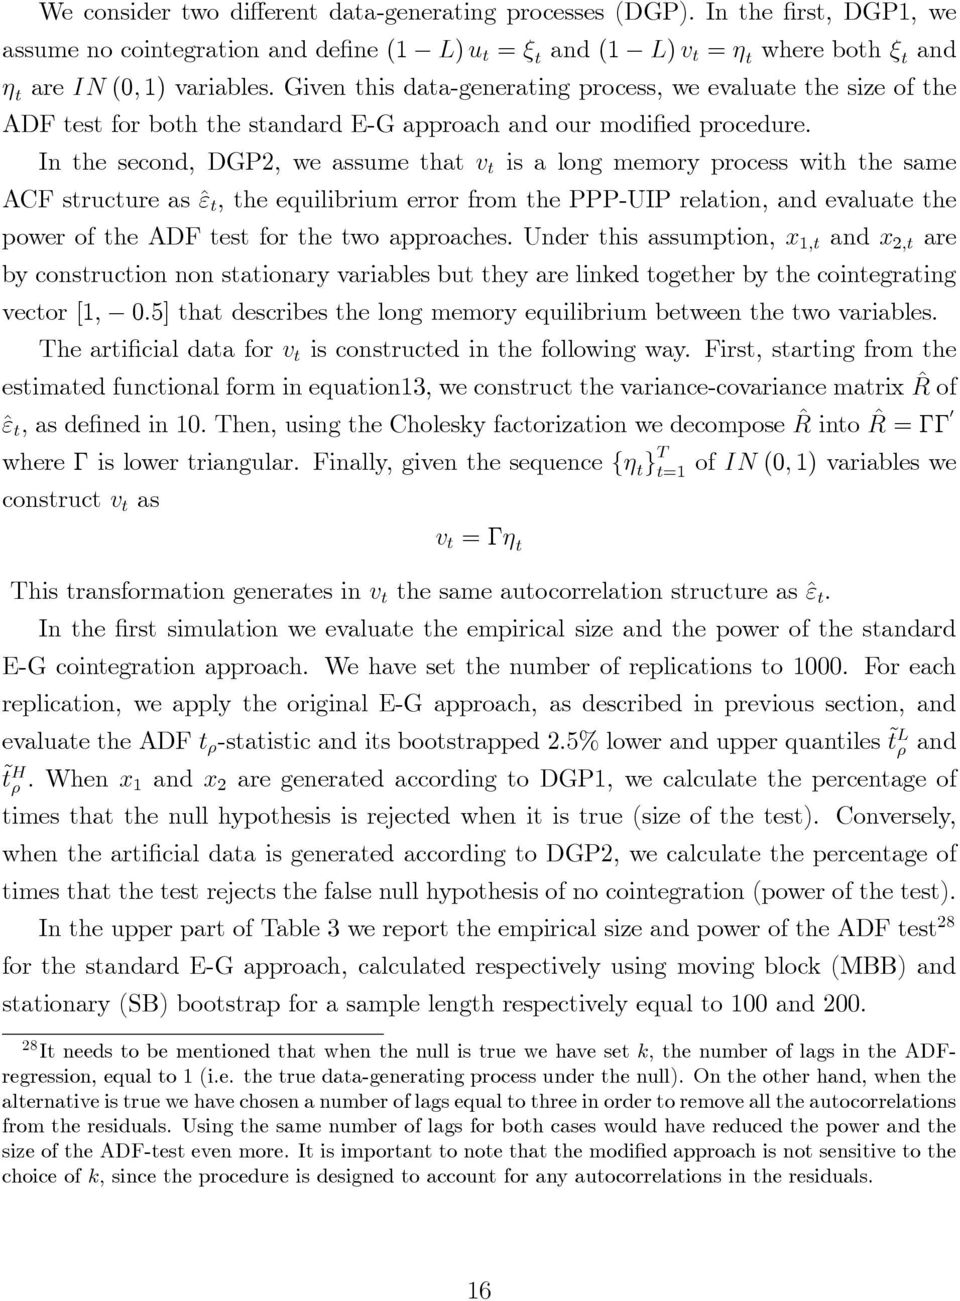 "In the second, DGP2, we assume that v t is a long memory process with the same ACF structure as ^"" t, the equilibrium error from the PPP-UIP relation, and evaluate the power of the ADF test for the"